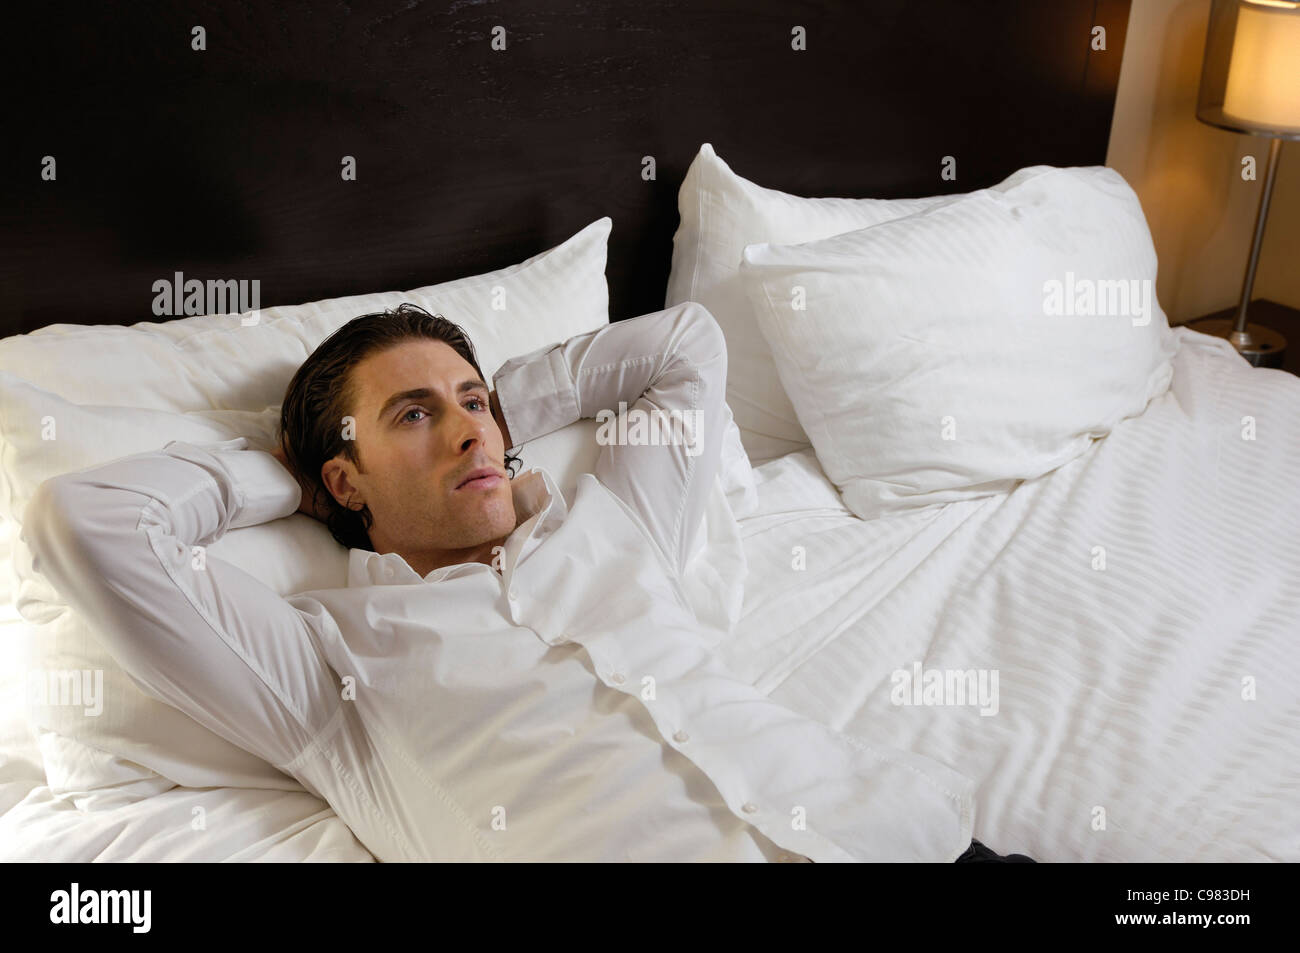 Young man lying alone in bed with thoughtful expression - Stock Image